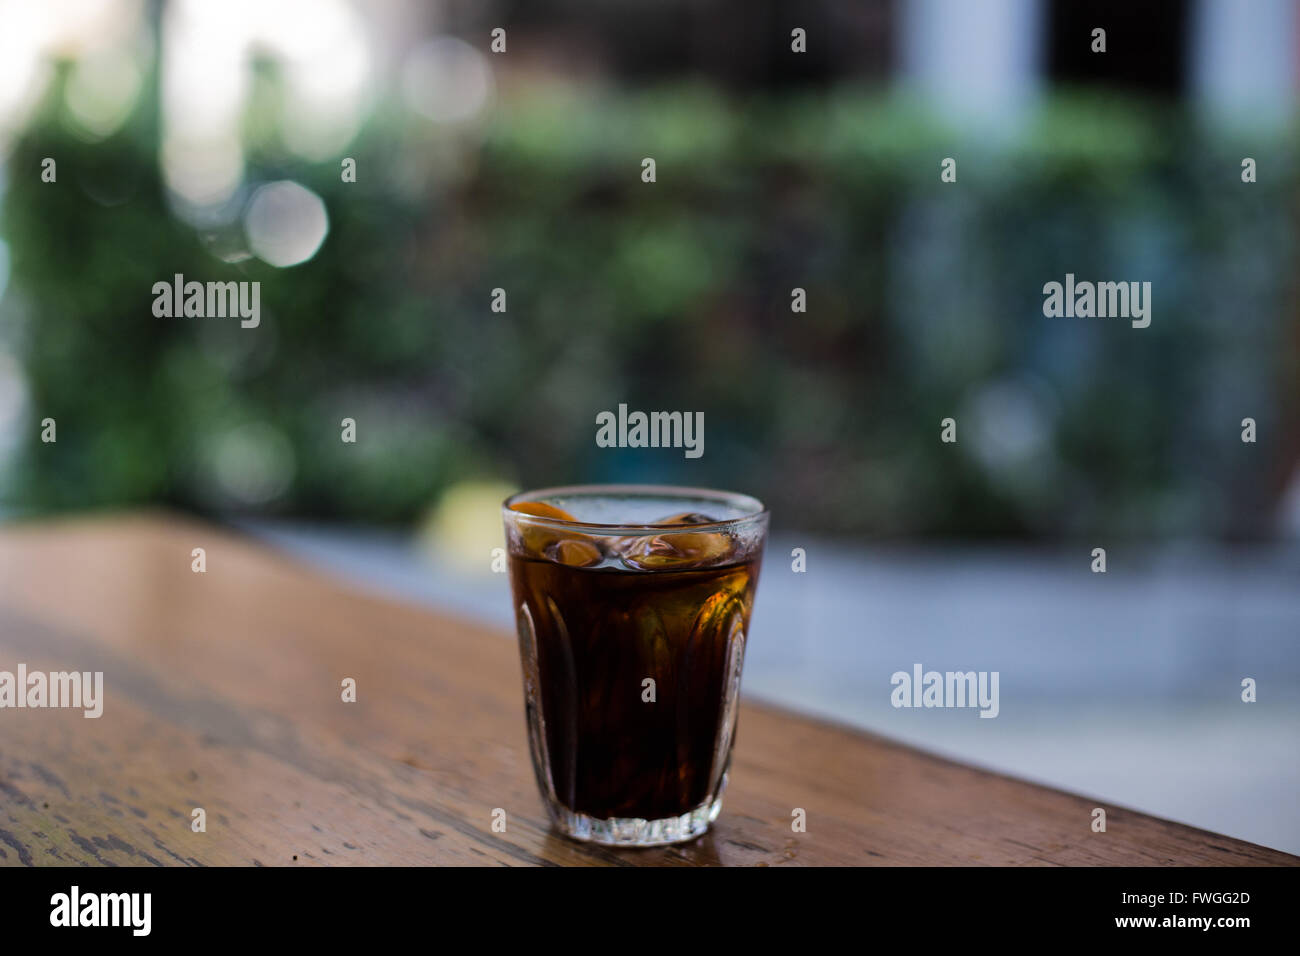 Cold brew iced coffee on wooden table with blurry background - Stock Image